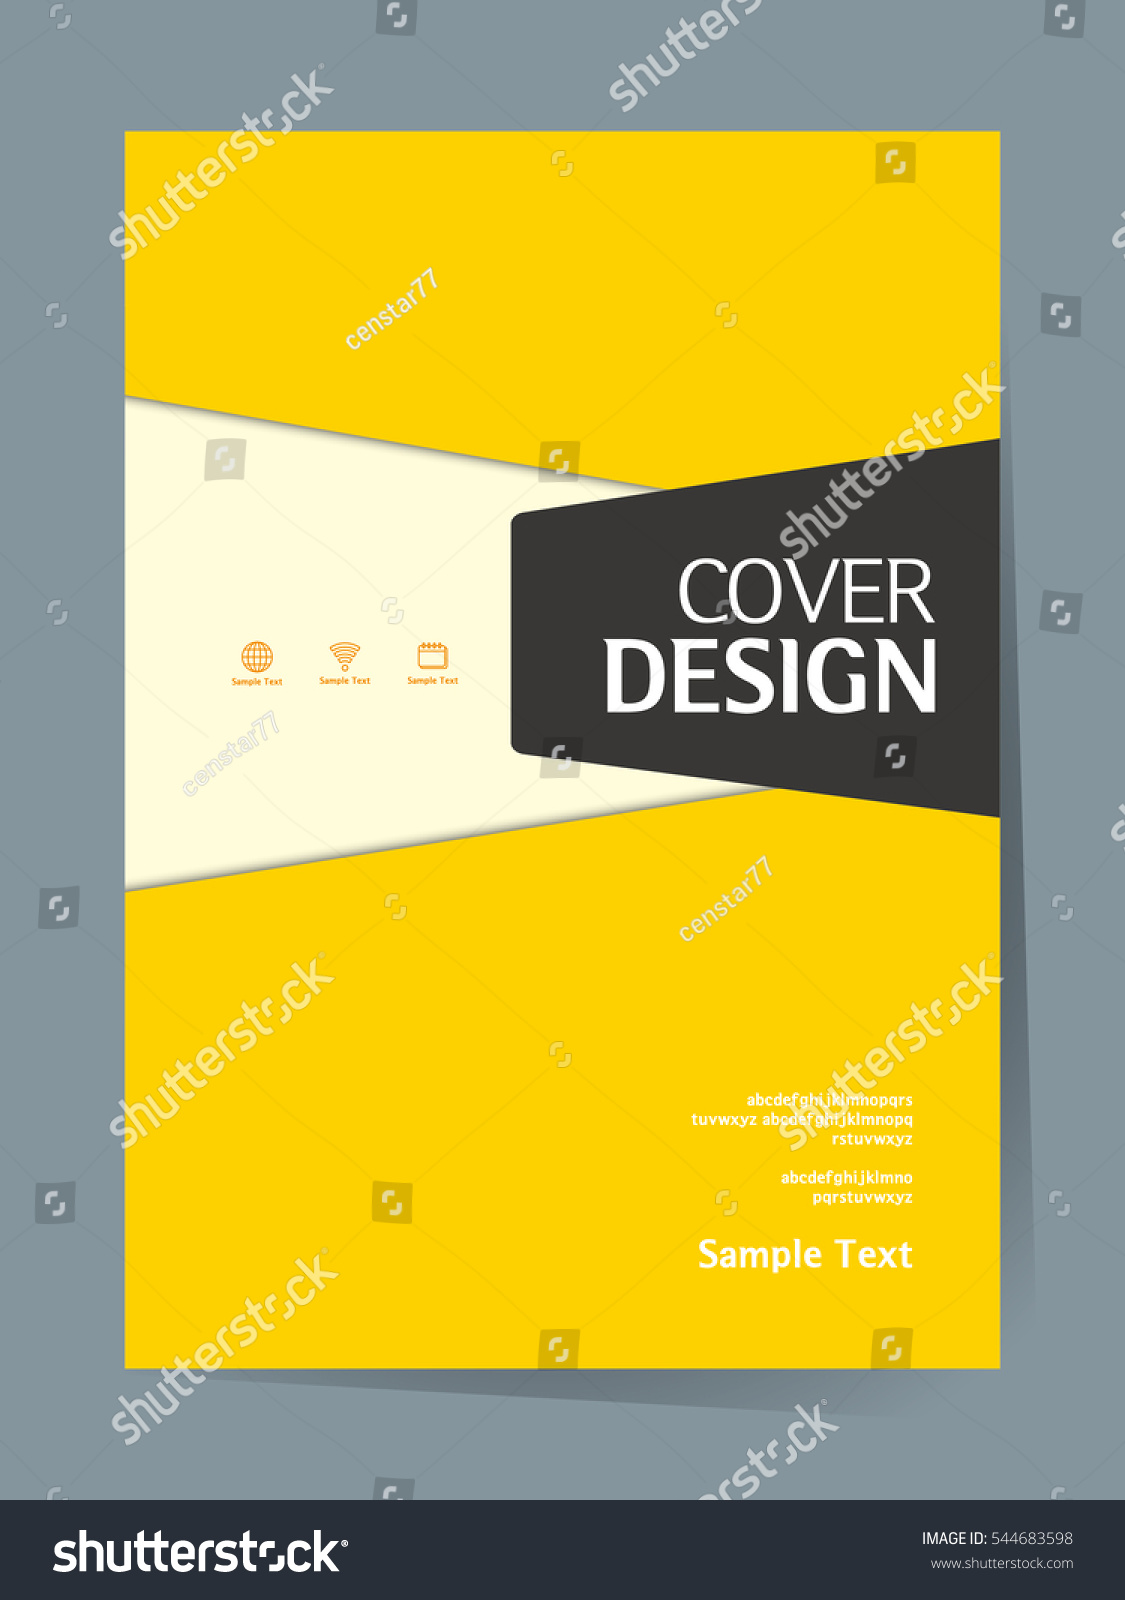 Simple Book Cover Template : Book cover design vector template a 스톡 벡터